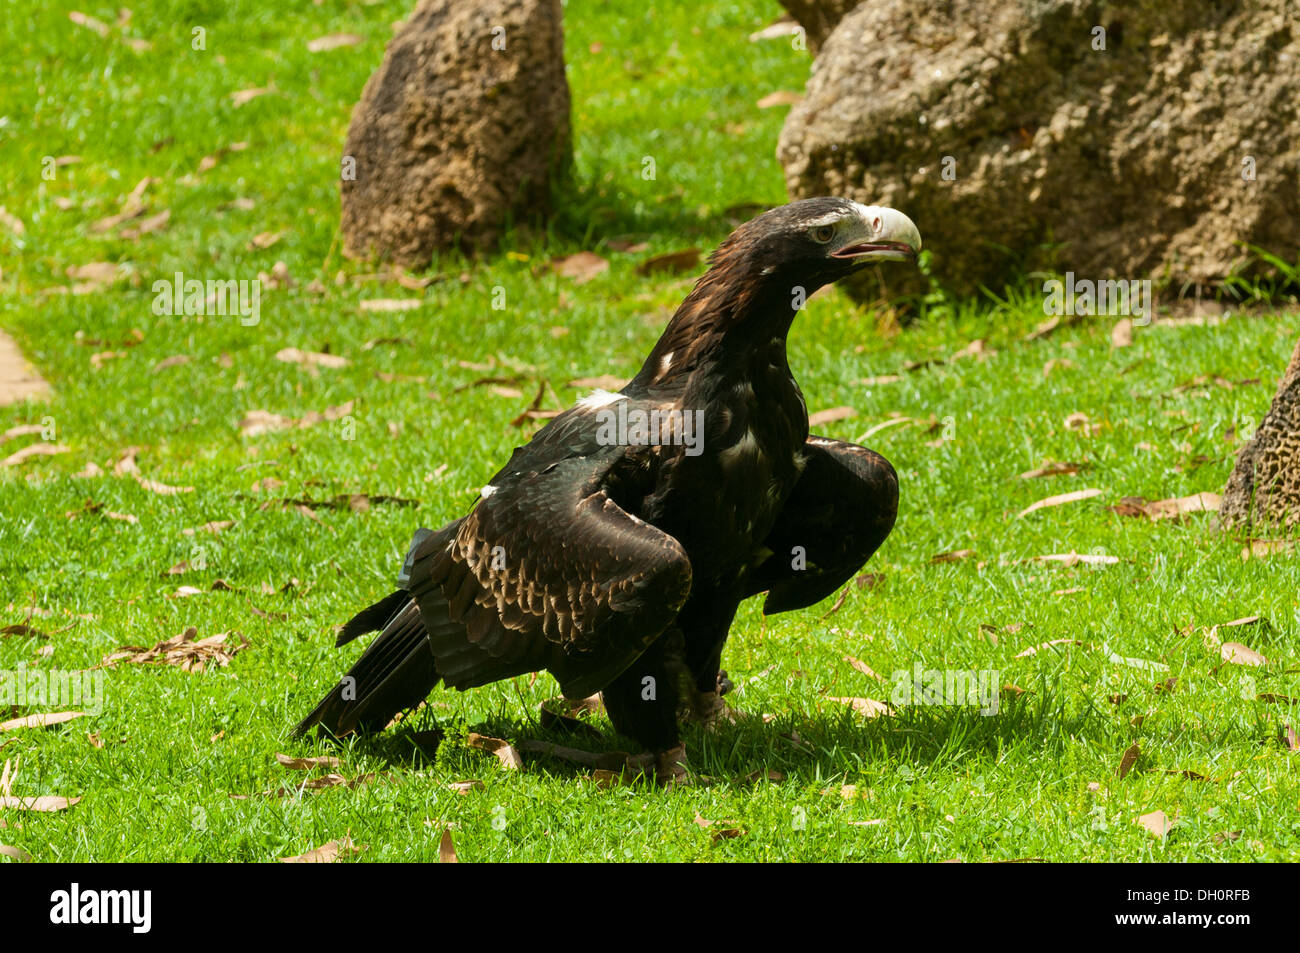 Wedge-tailed Eagle at Healesville Sanctuary near Melbourne, Victoria, Australia - Stock Image